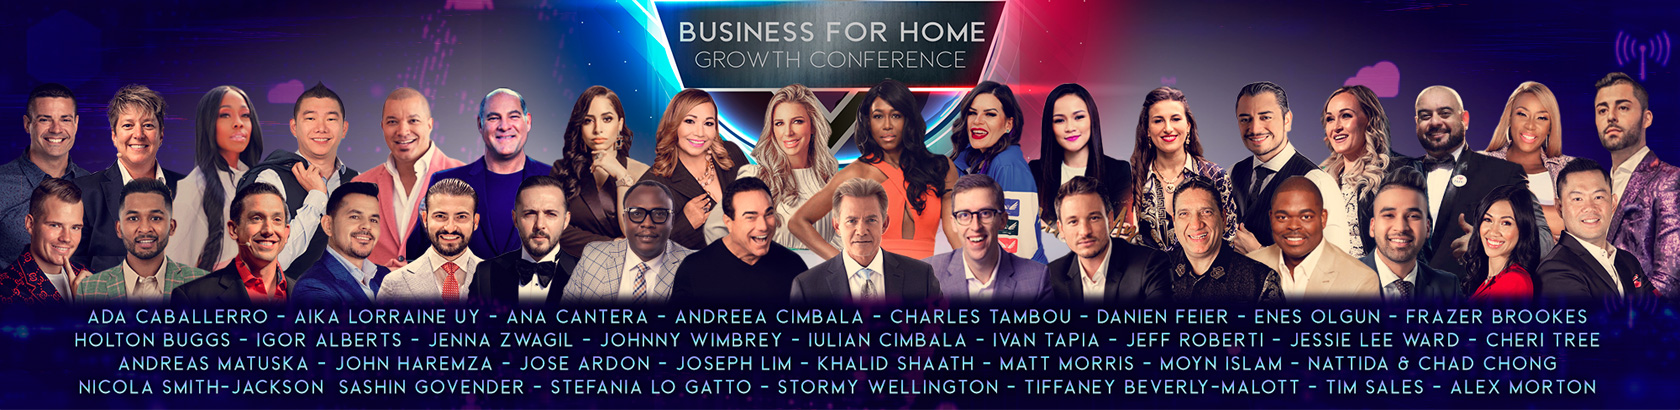 Business For Home Virtual conference 4 - 6 June: Click here